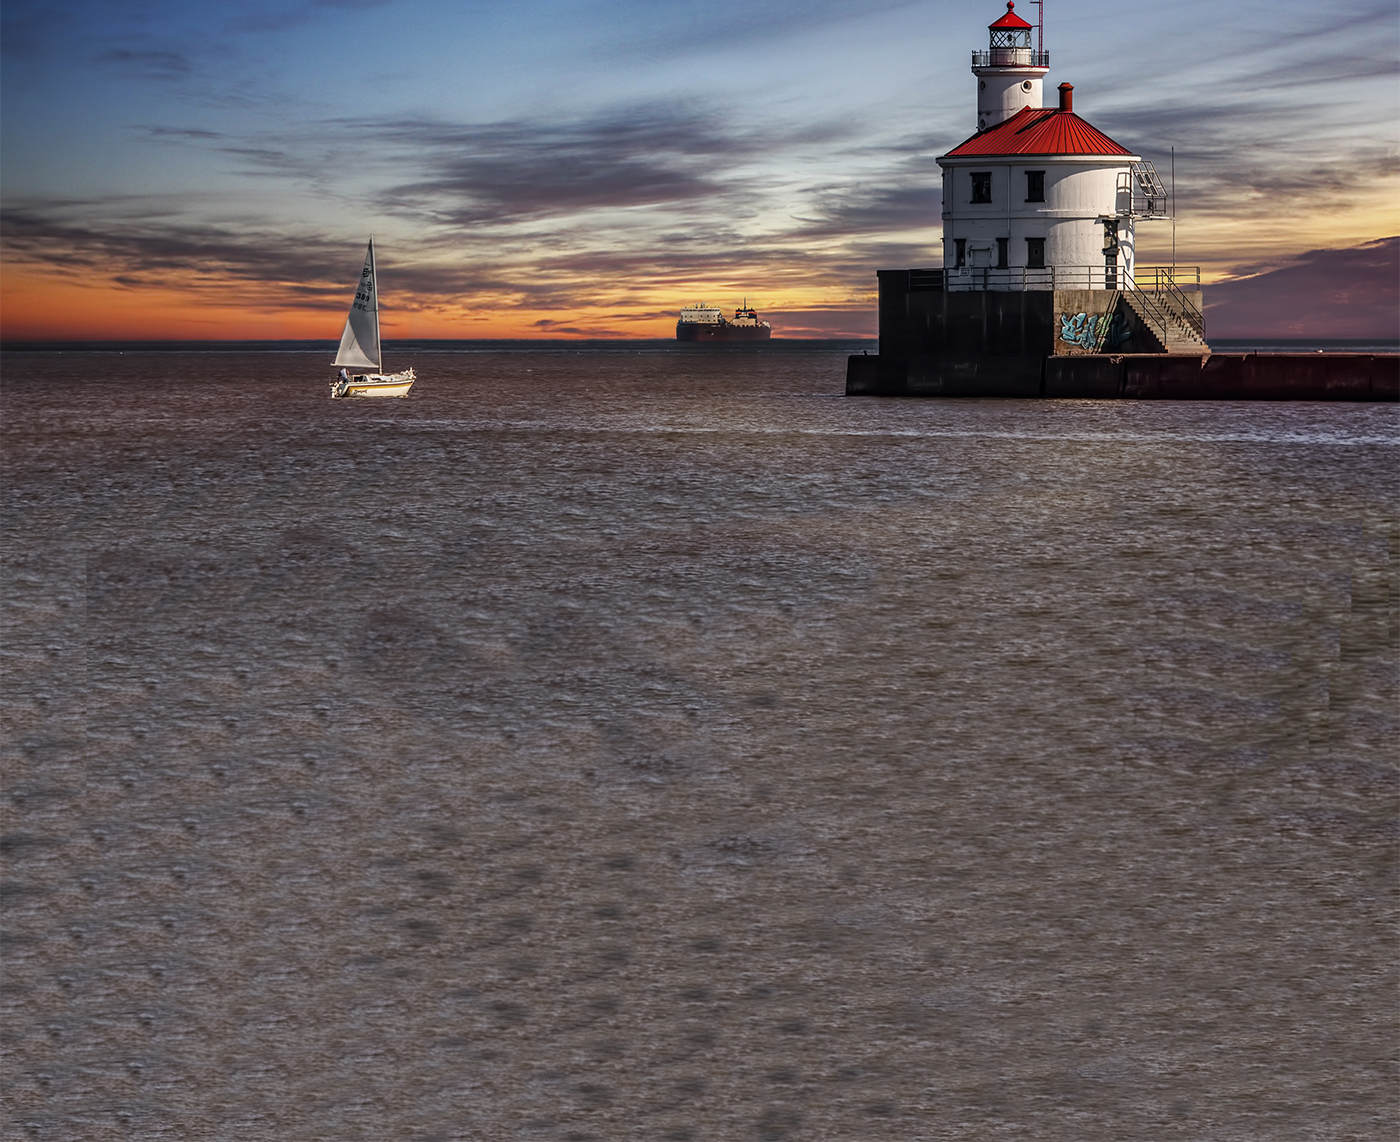 Supeior-Lighthouse-with-boats-(by-Joe-Polecheck).jpg